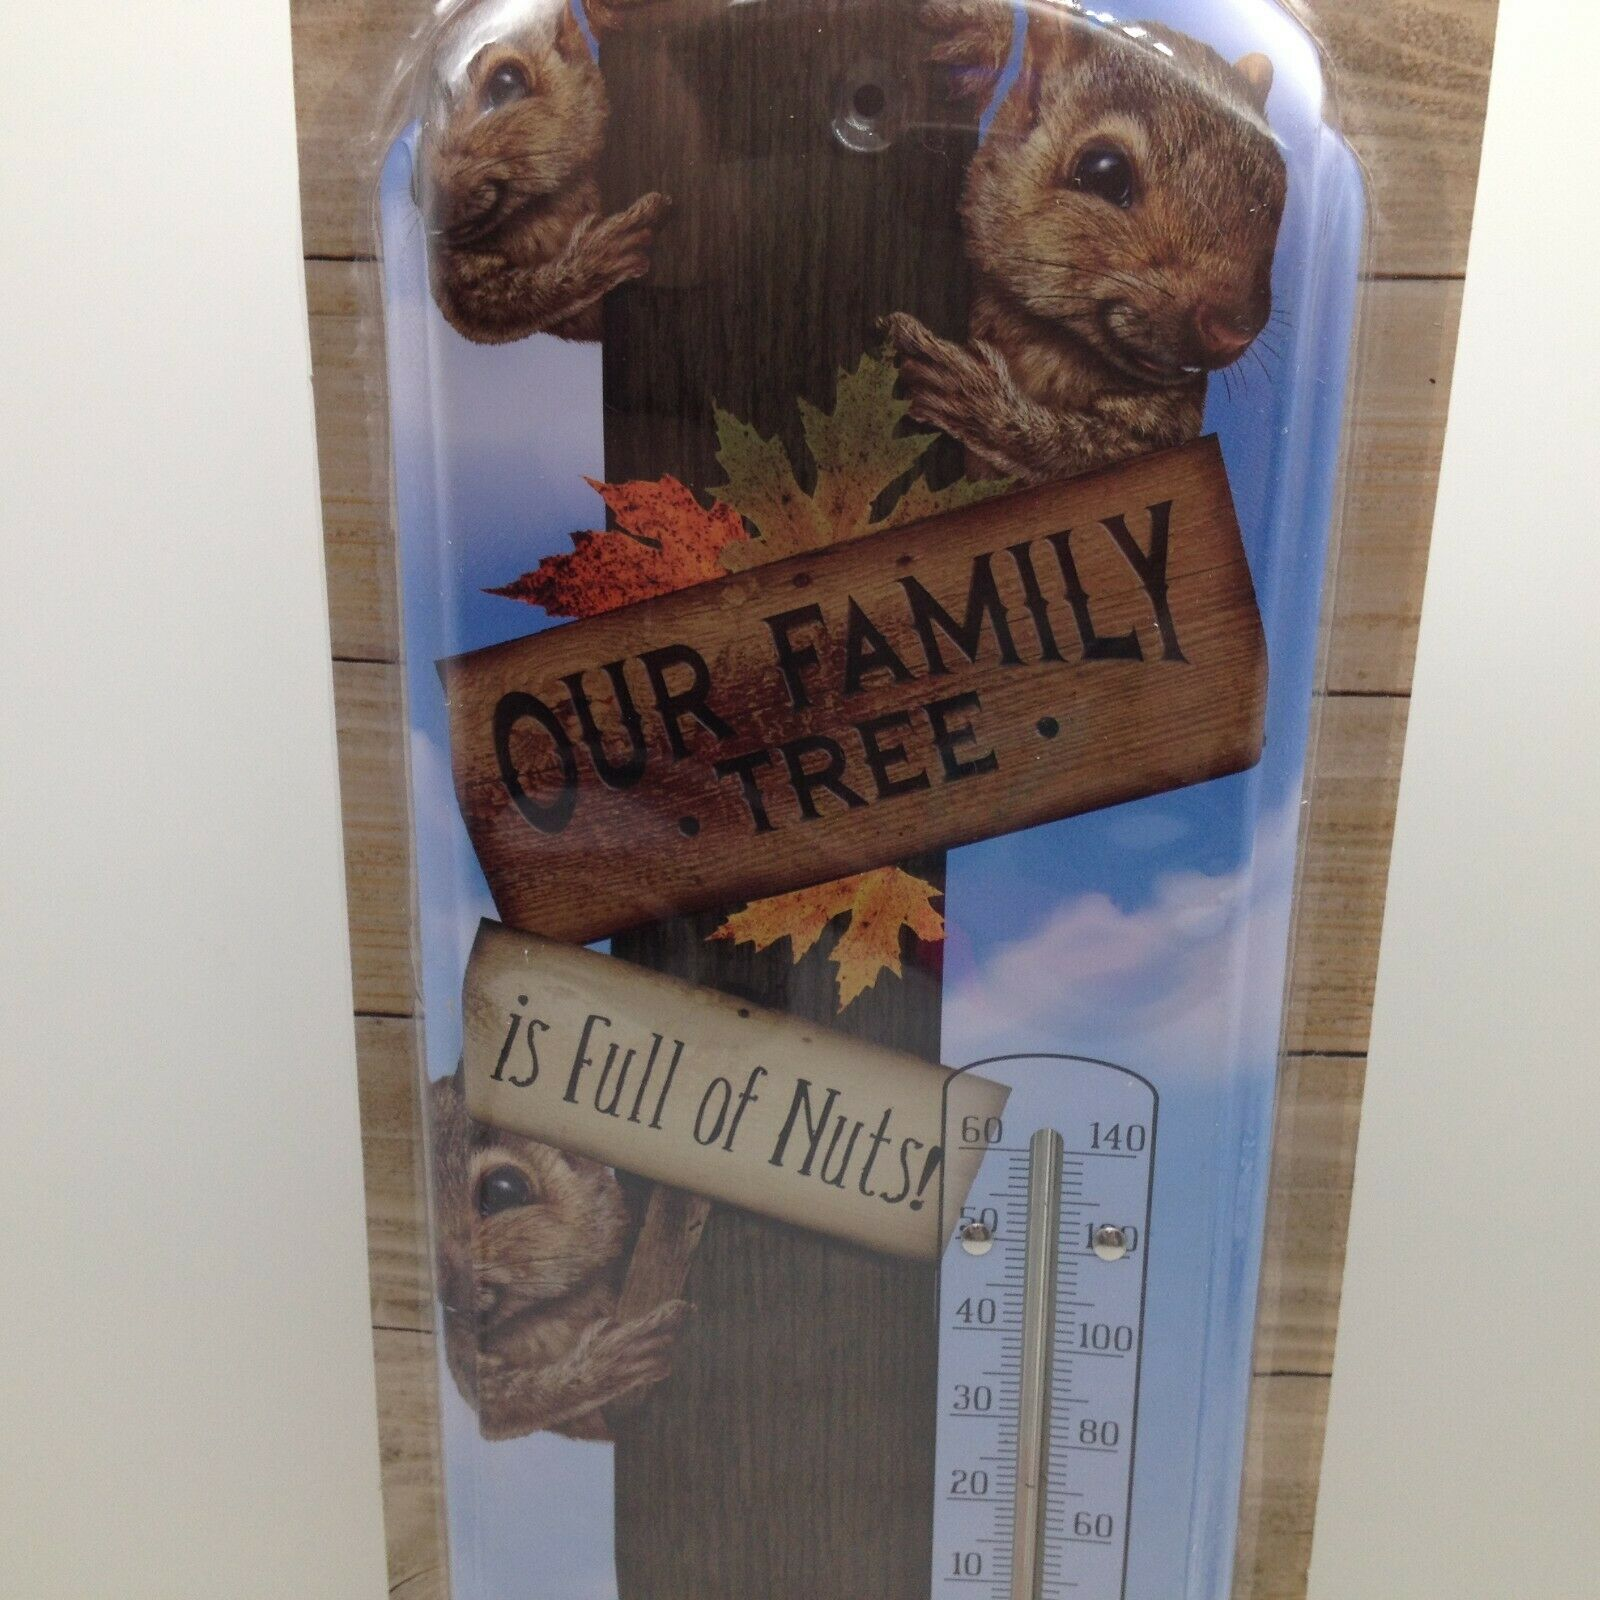 Our Family Tree is Full of Nuts Squirrel Indoor Outdoor Thermometer Metal 17.5